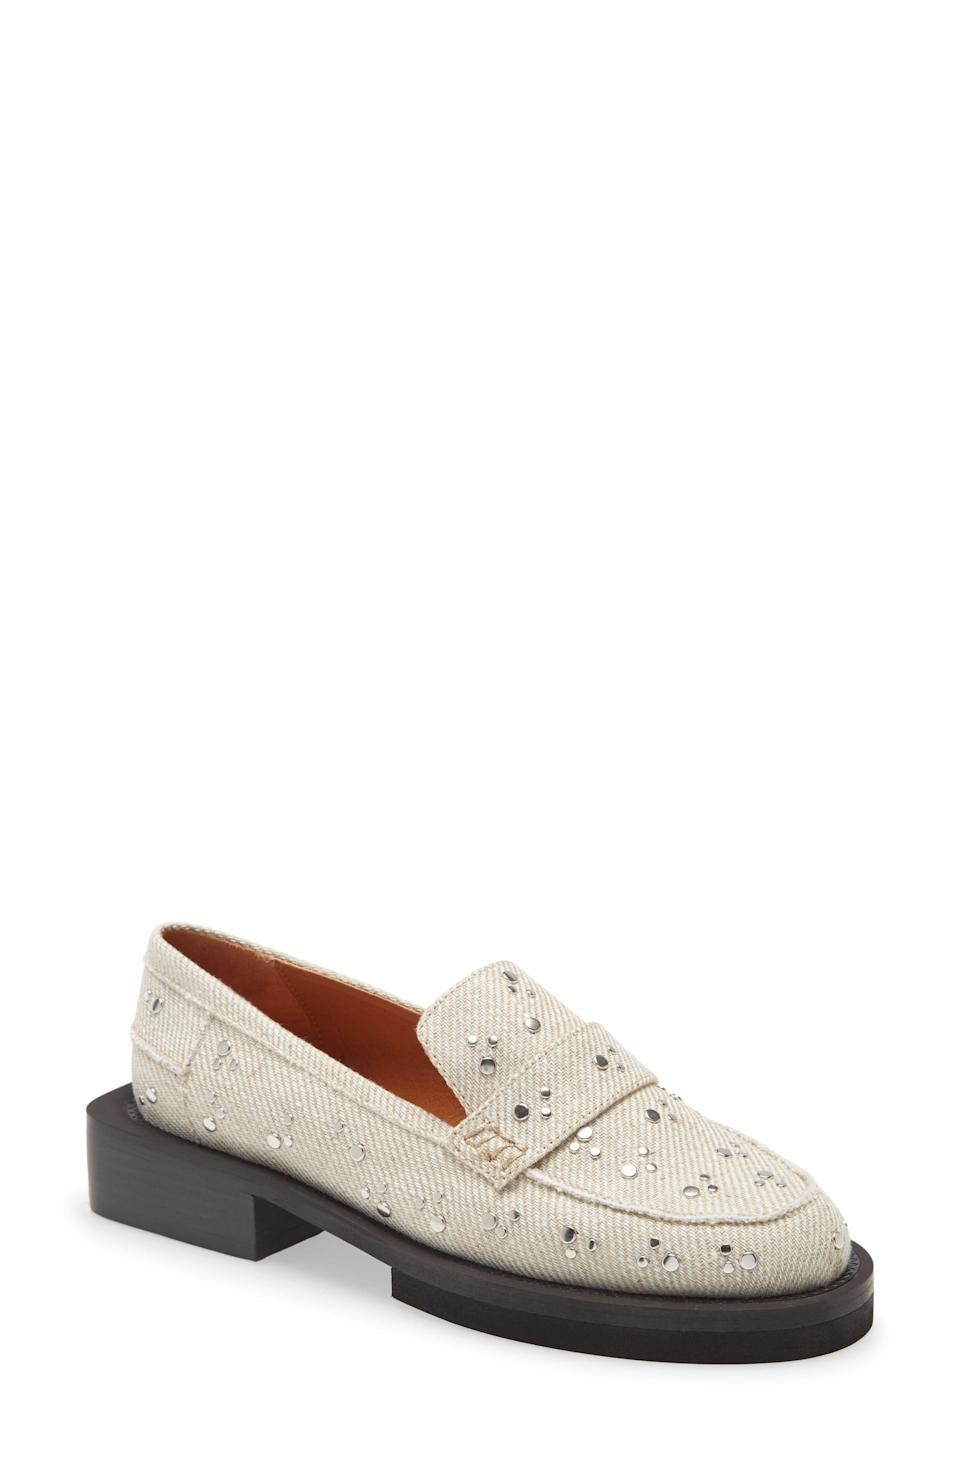 """<p><strong>GANNI</strong></p><p>nordstrom.com</p><p><strong>$267.00</strong></p><p><a href=""""https://go.redirectingat.com?id=74968X1596630&url=https%3A%2F%2Fwww.nordstrom.com%2Fs%2Fganni-studded-canvas-loafer-women%2F5616624&sref=https%3A%2F%2Fwww.elle.com%2Ffashion%2Fshopping%2Fg34741930%2Fnordstrom-12-days-of-cyber-savings-sale%2F"""" rel=""""nofollow noopener"""" target=""""_blank"""" data-ylk=""""slk:Shop Now"""" class=""""link rapid-noclick-resp"""">Shop Now</a></p>"""